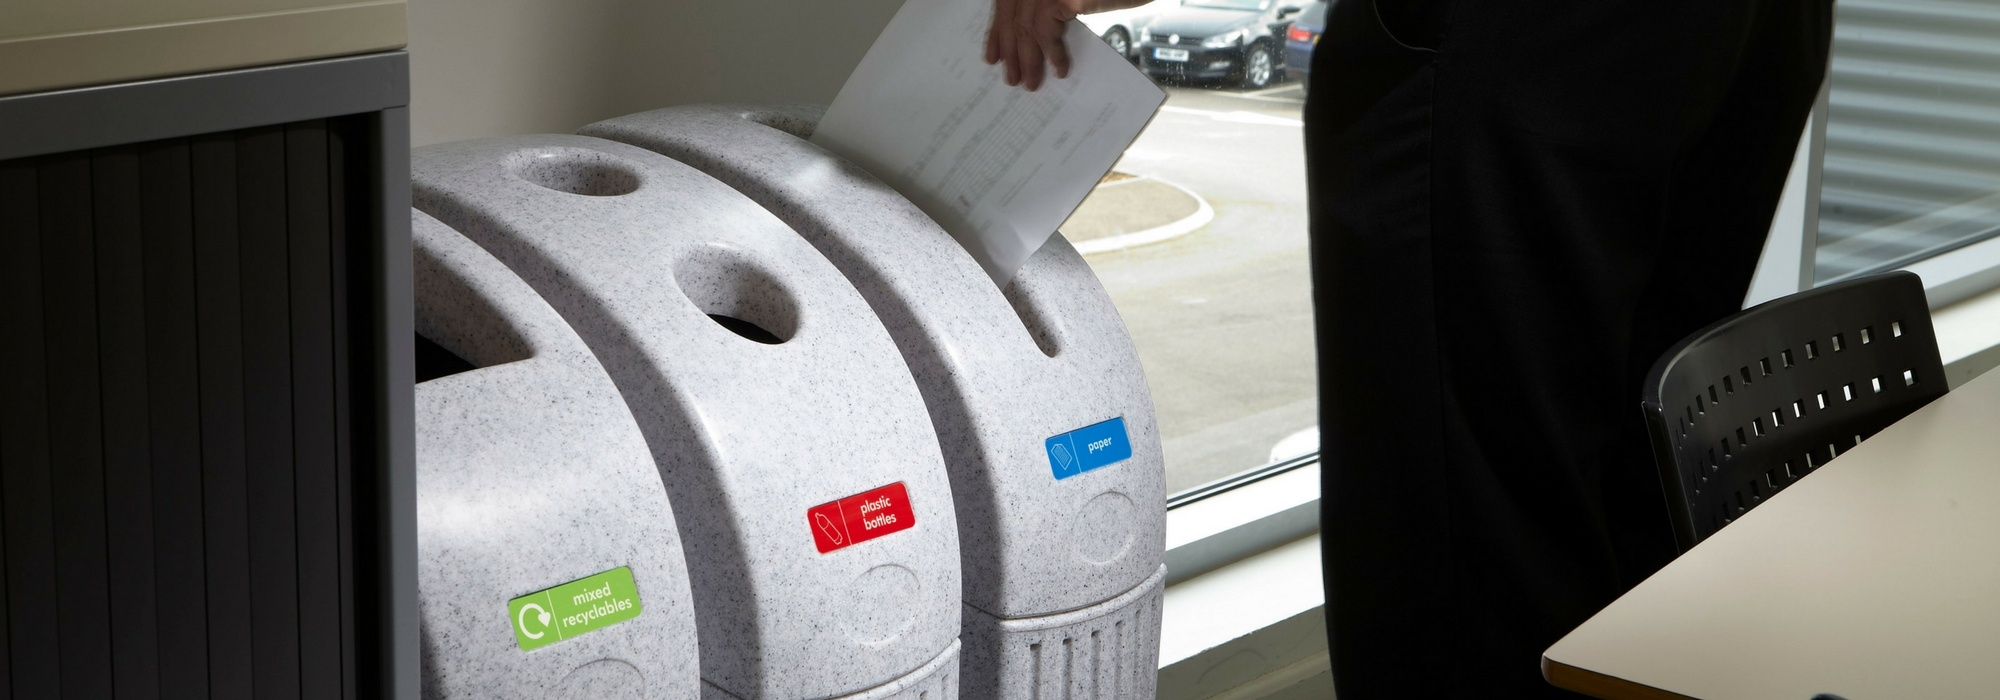 GDPR compliant paper waste bins for offices